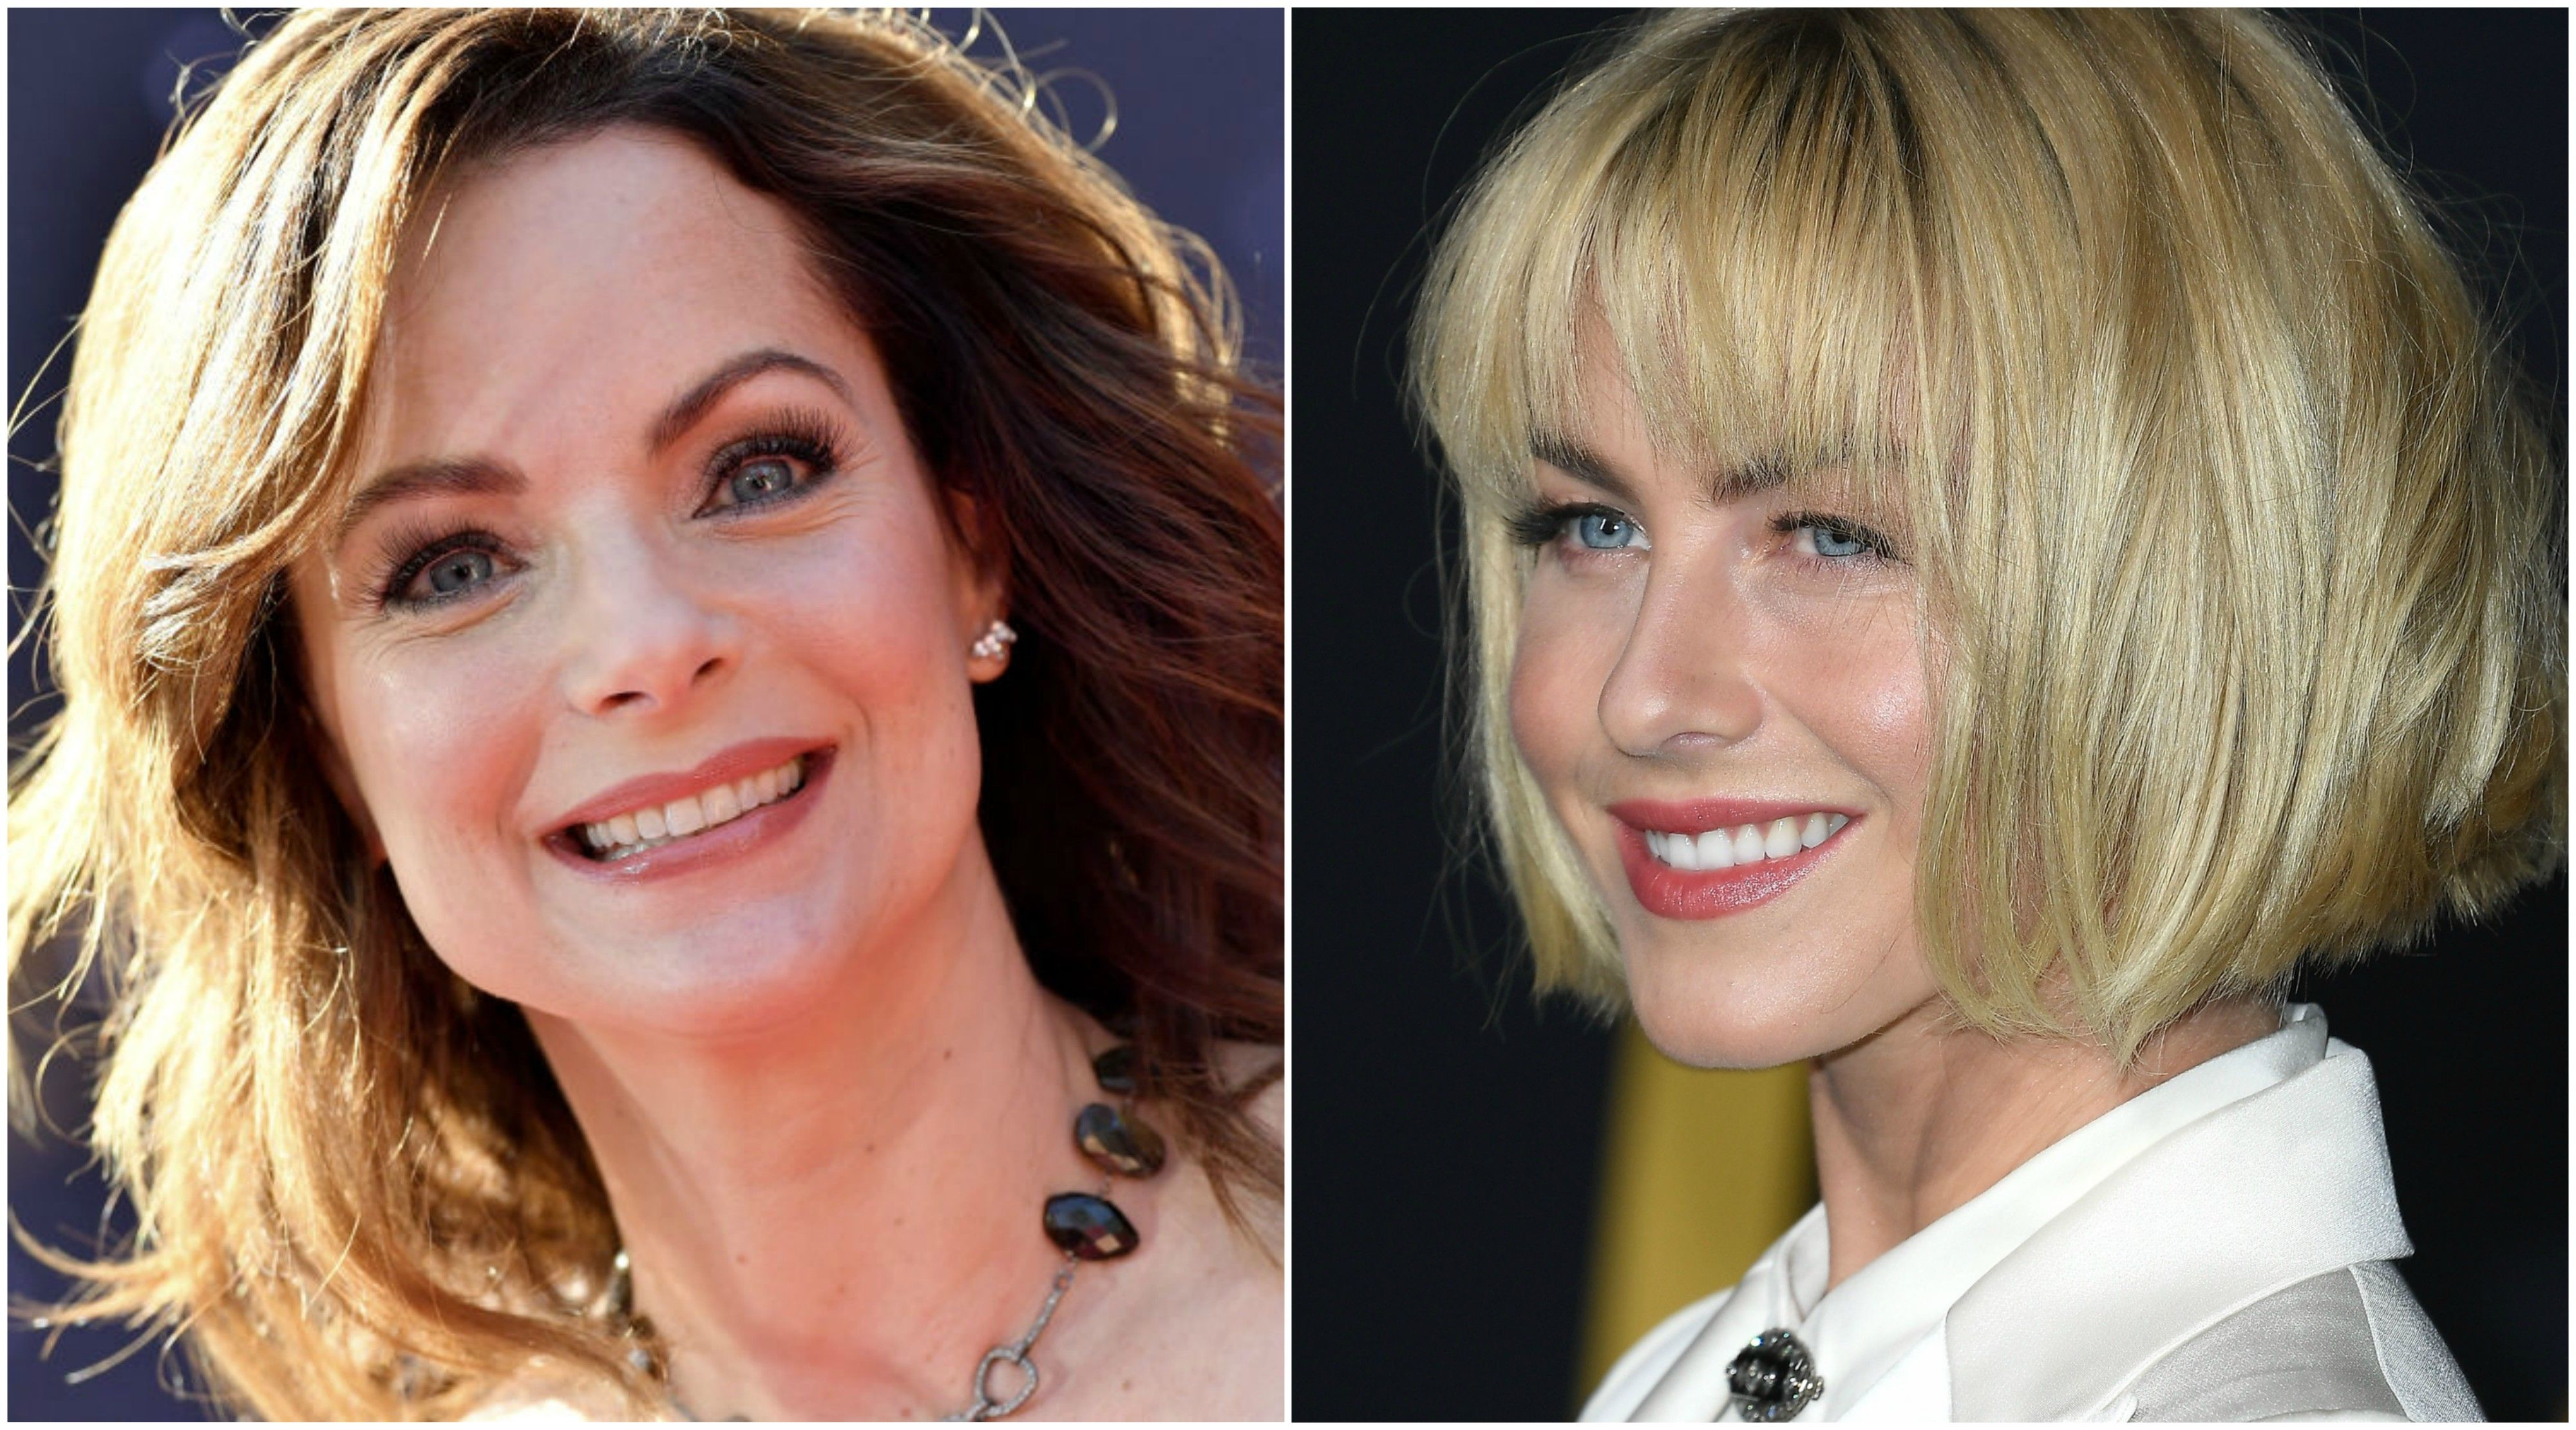 Kimberly Williams Paisley And Julianne Hough To Star In